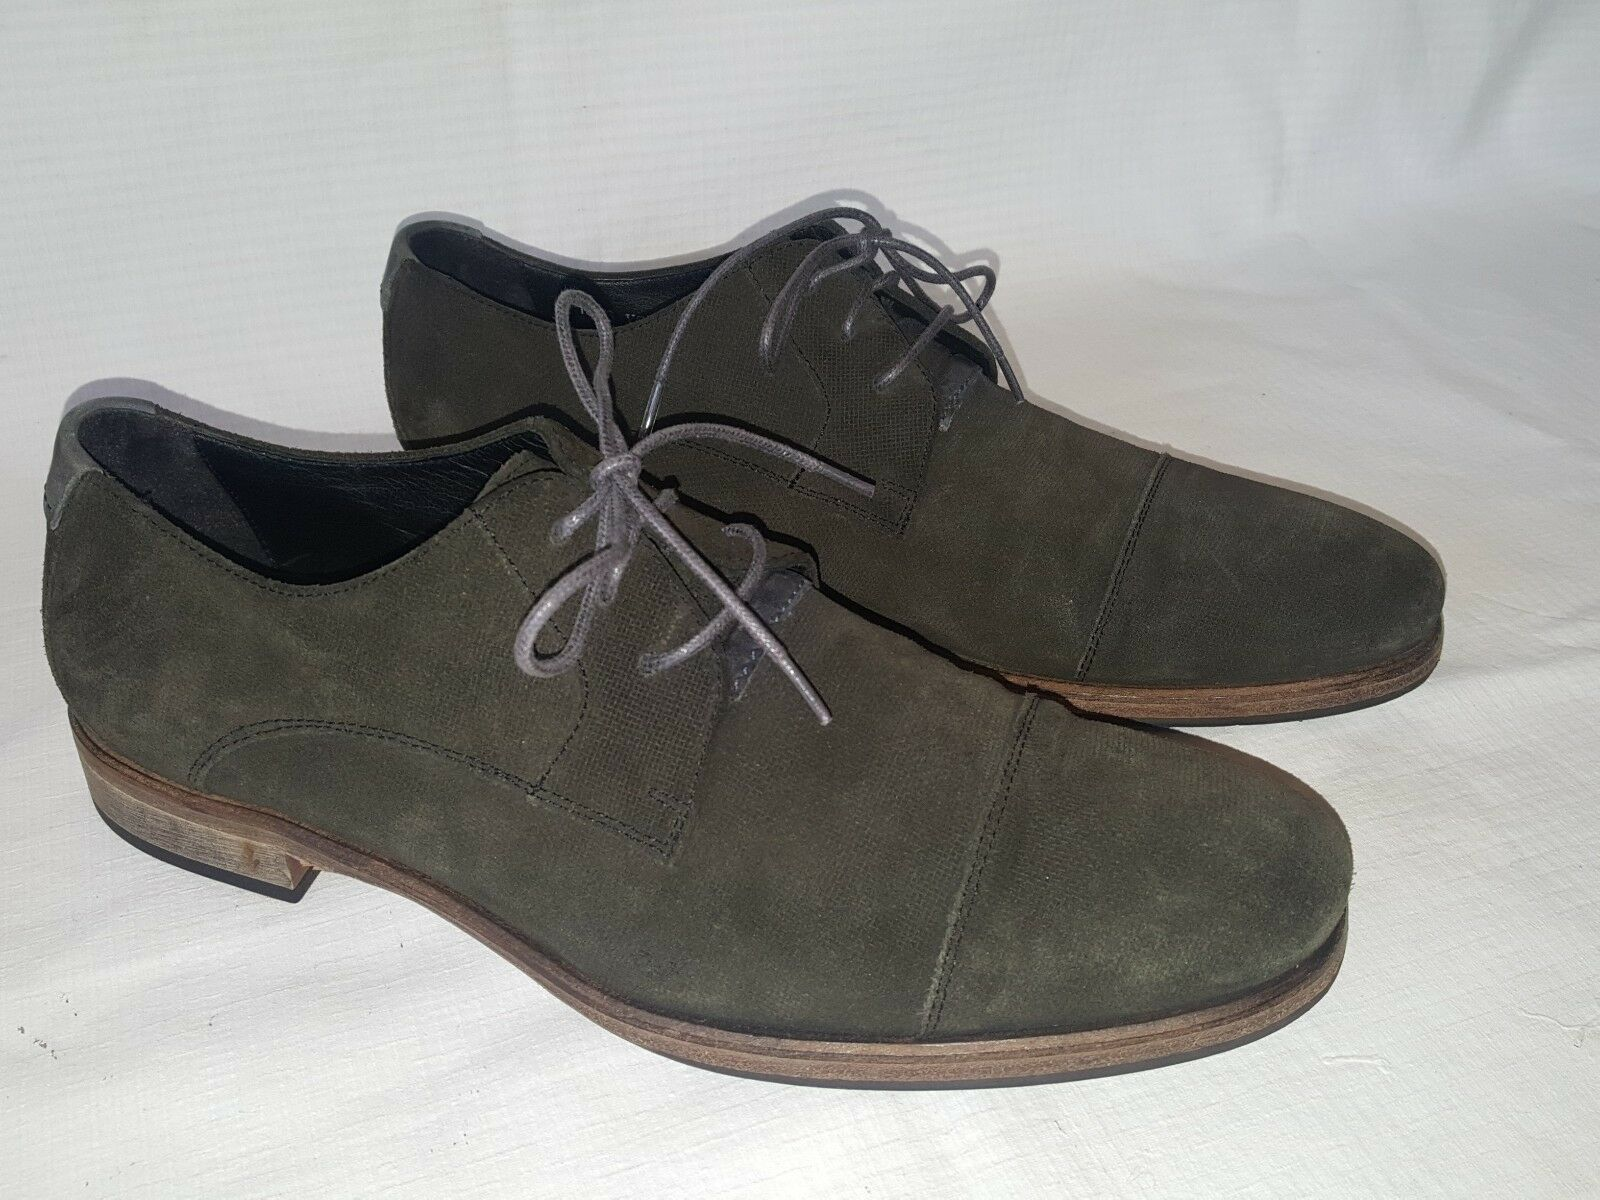 JOHN VARVATOS OLIVE GREEN SUEDE CAPTOE OXFORDS MEN'S SIZE 10 HAND MADE IN ITALY